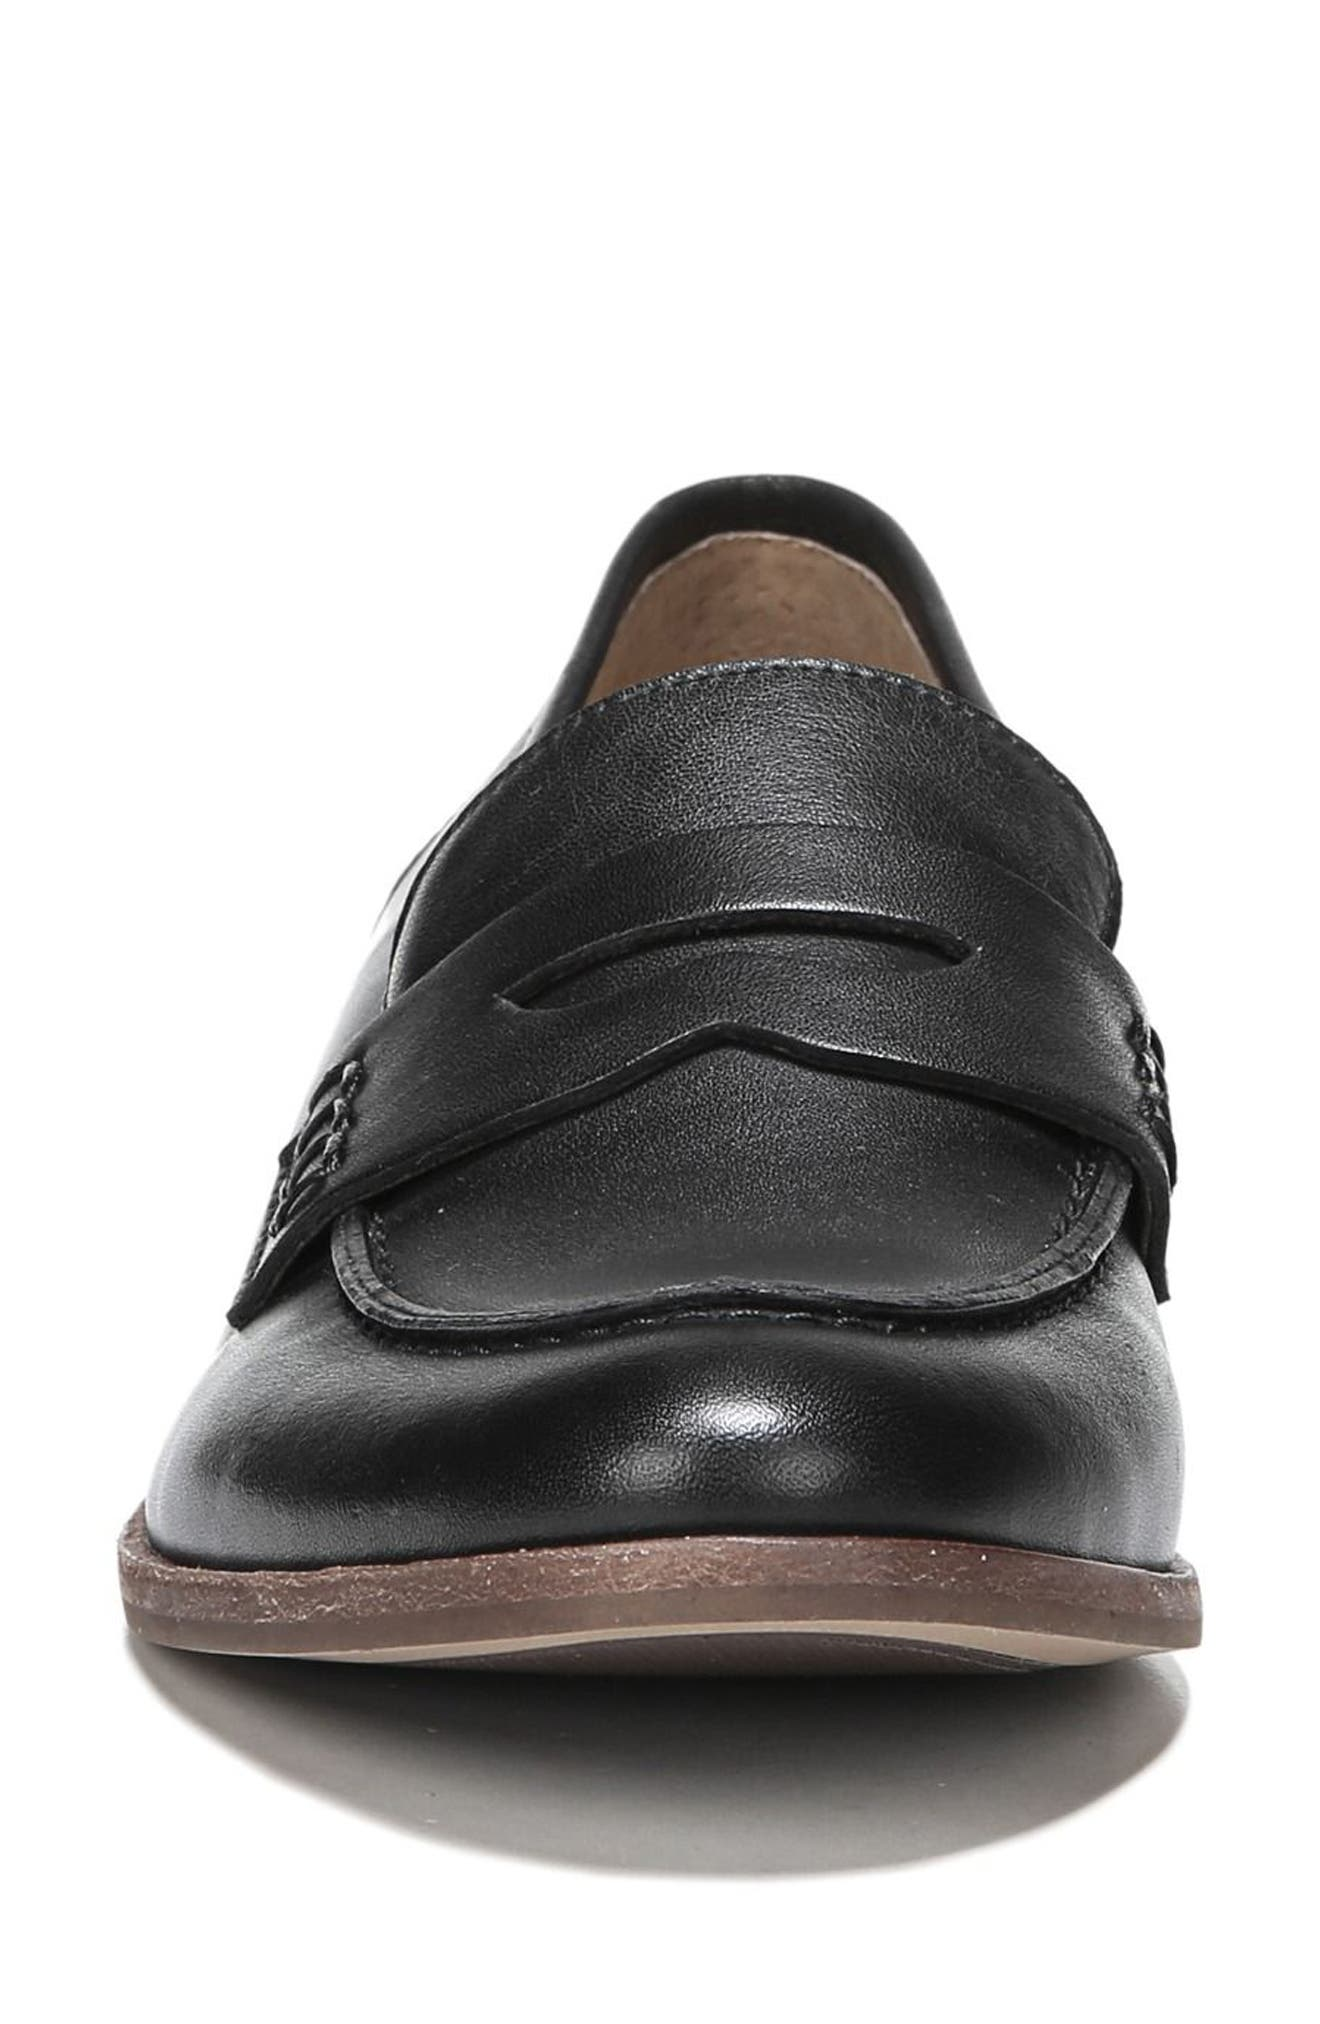 SARTO BY FRANCO SARTO, 'Jolette' Penny Loafer, Alternate thumbnail 4, color, BLACK LEATHER